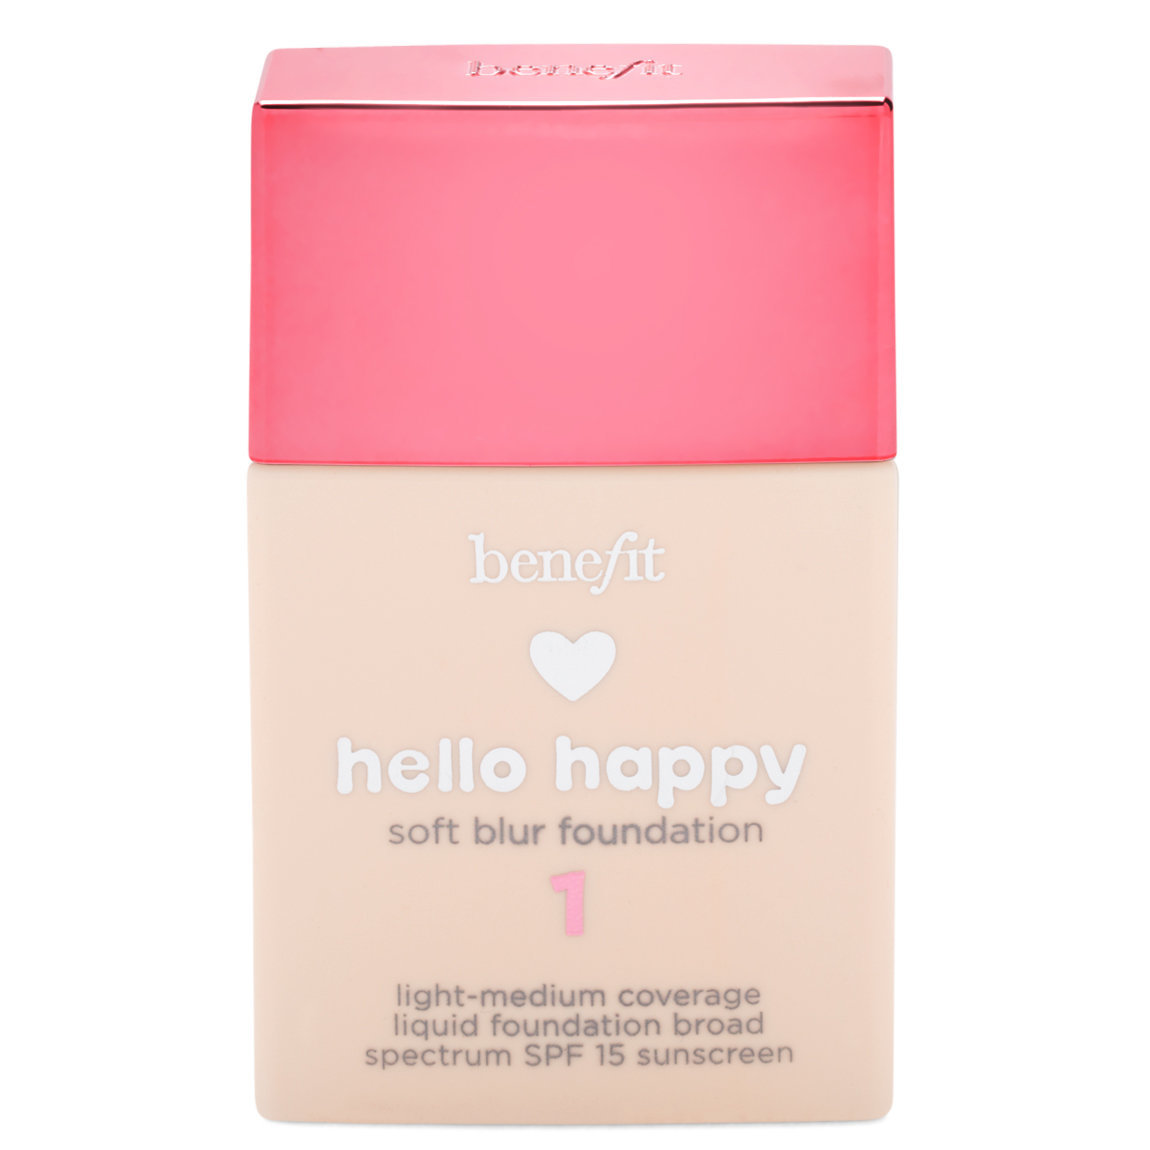 Benefit Cosmetics Hello Happy Soft Blur Foundation 01 Fair - Cool